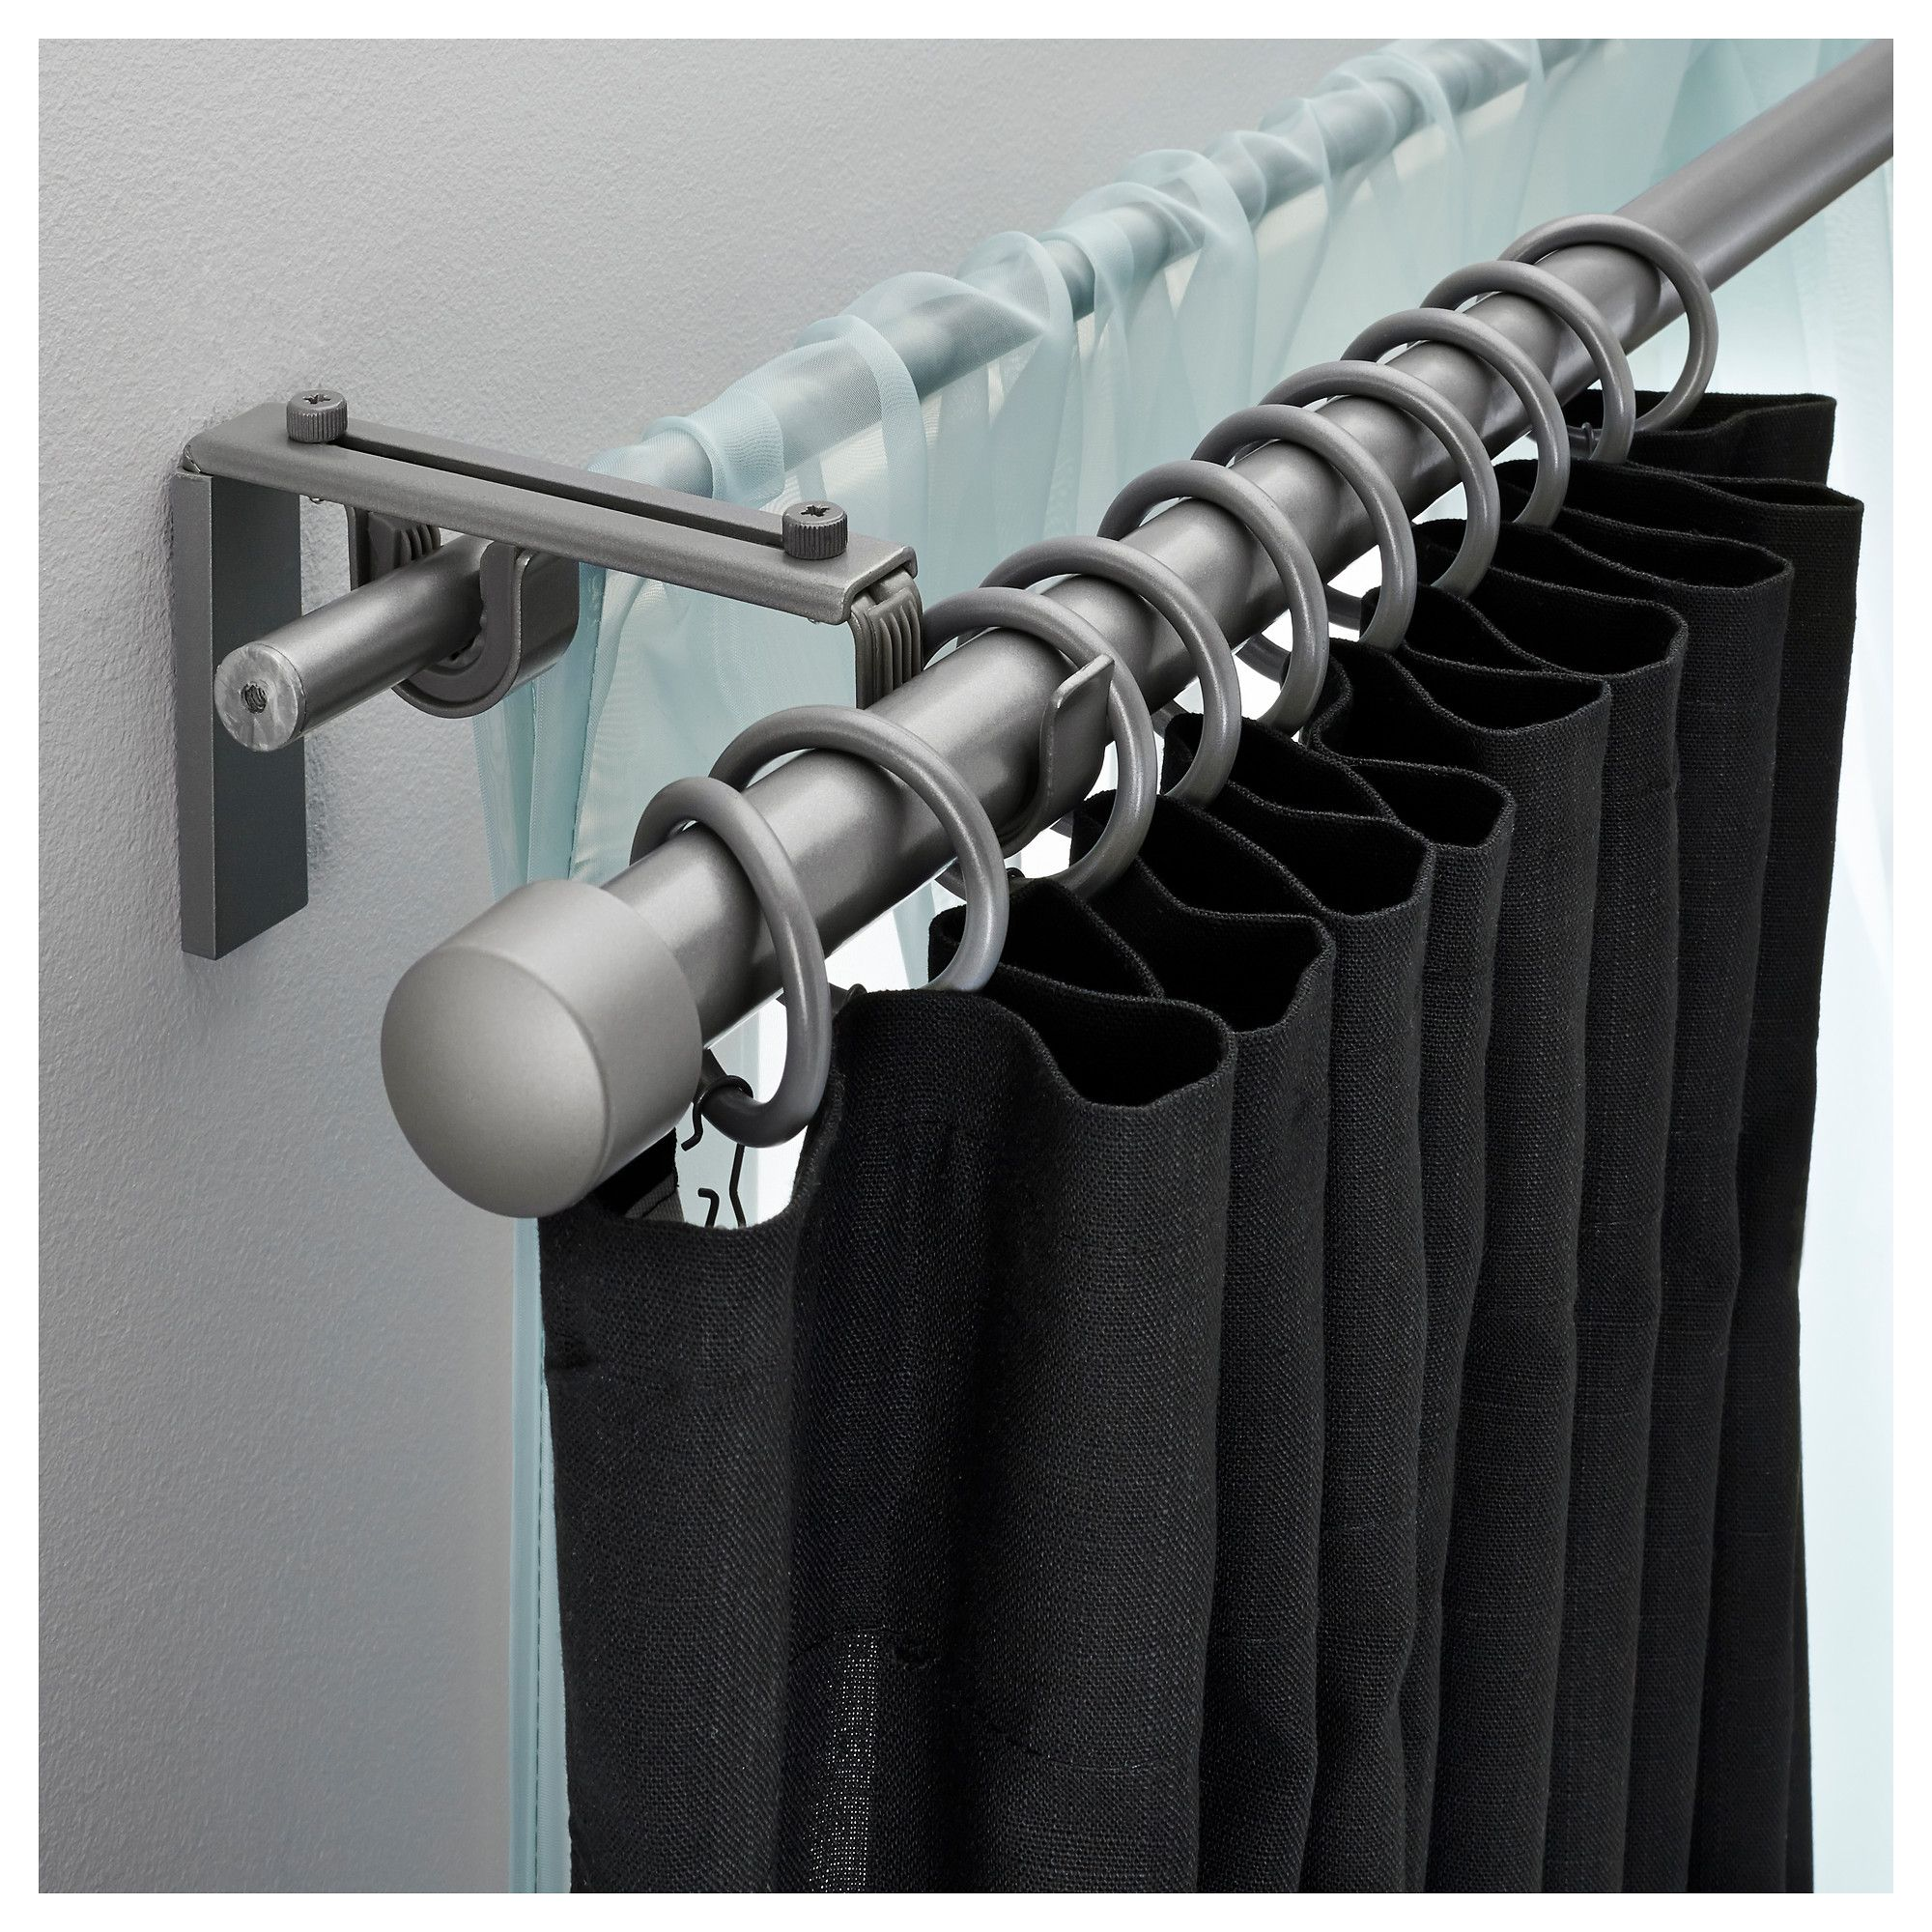 Racka Hugad Double Curtain Rod Combination Silver Color 82 5 8 151 5 8 Cortinas Dobles Soporte Cortinas Cortinas Ikea